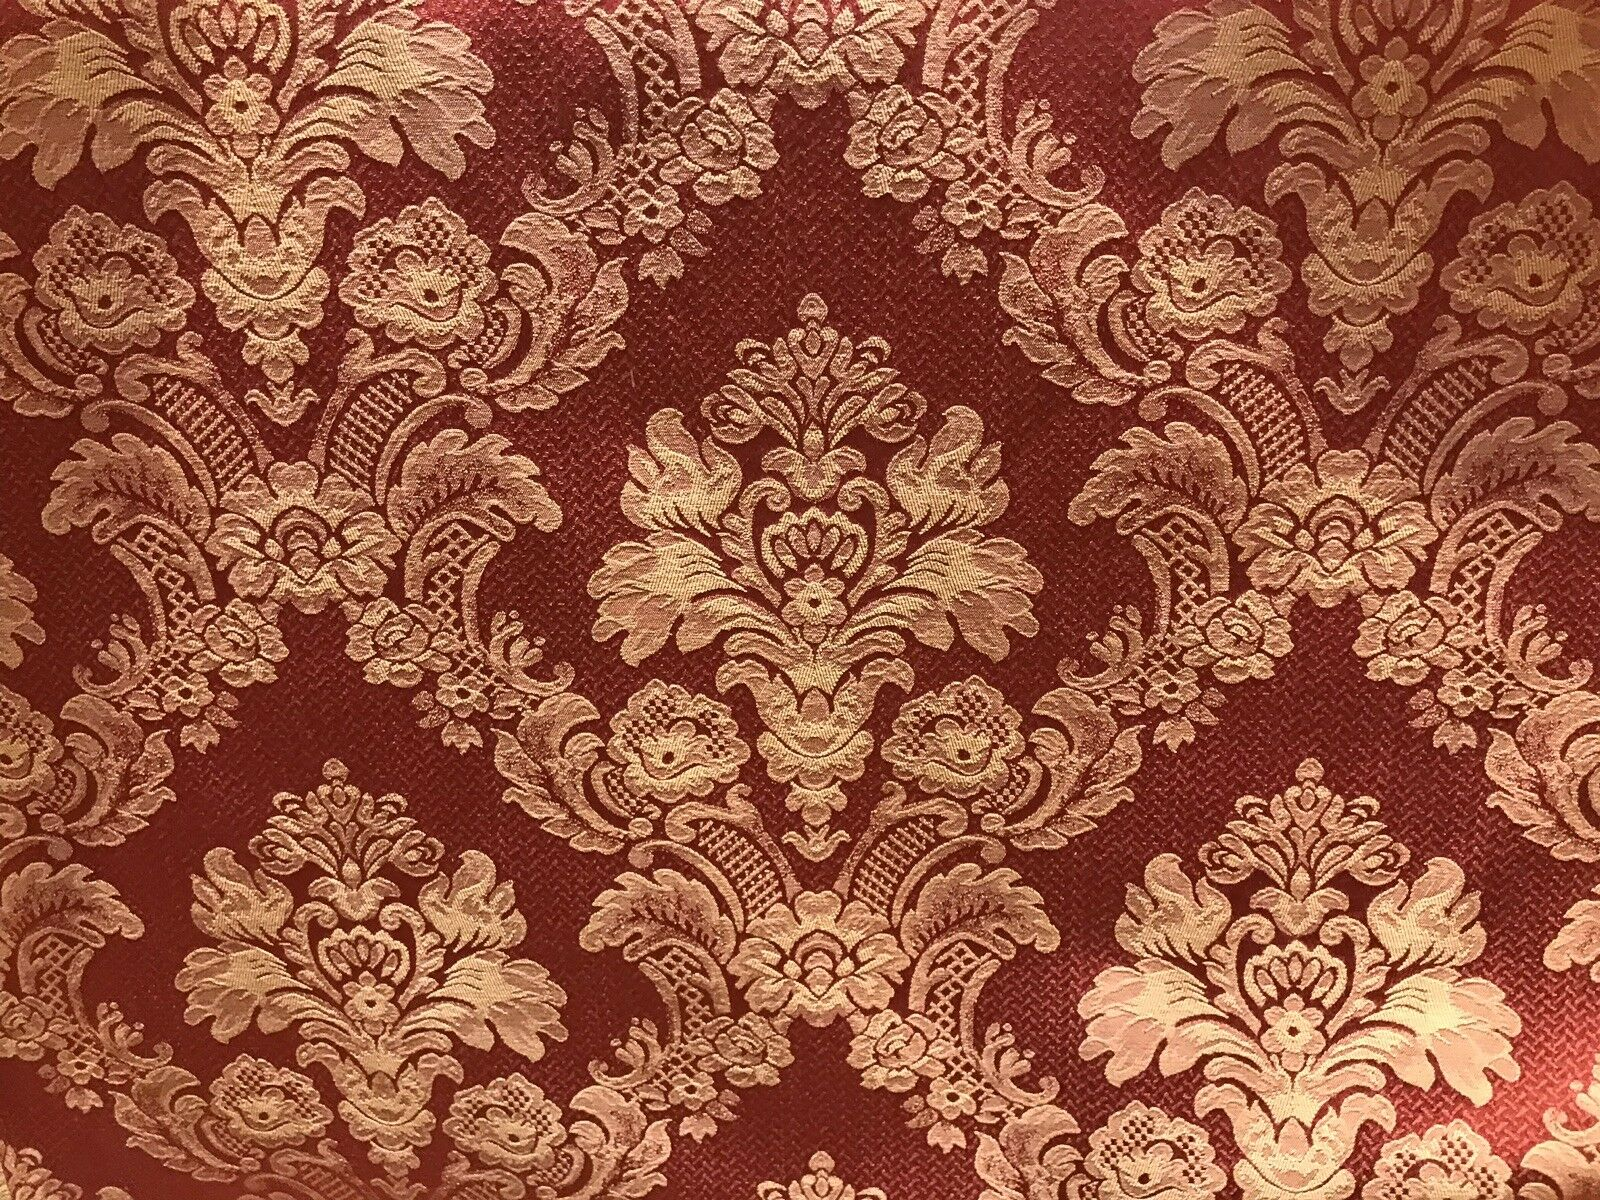 NEW SALE! Designer Brocade Jacquard Fabric- Floral- Upholstery- Red